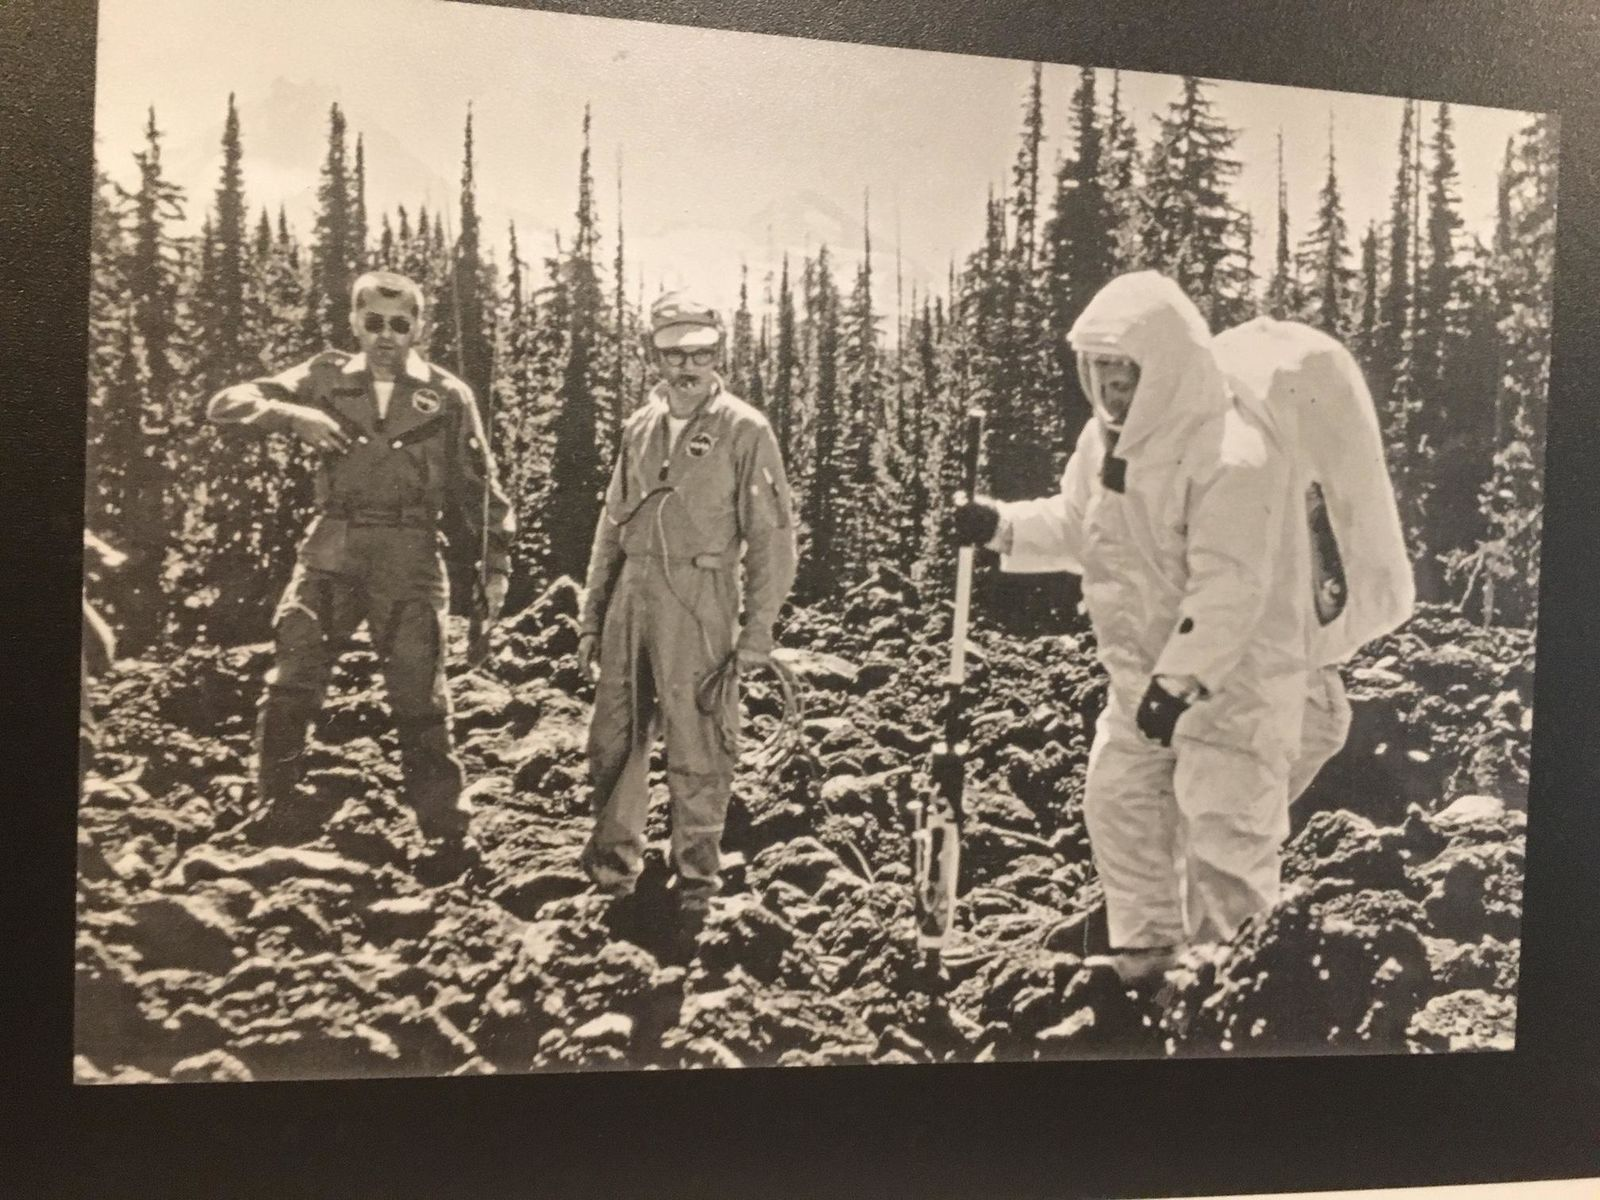 Fifty years ago this month, astronauts first set foot on the moon. Before blasting off for the lunar surface, they paid a visit to Central Oregon to test themselves and their equipment against the volcanic surface of the Cascade Mountains. (Moon Country exhibit at High Desert Museum)